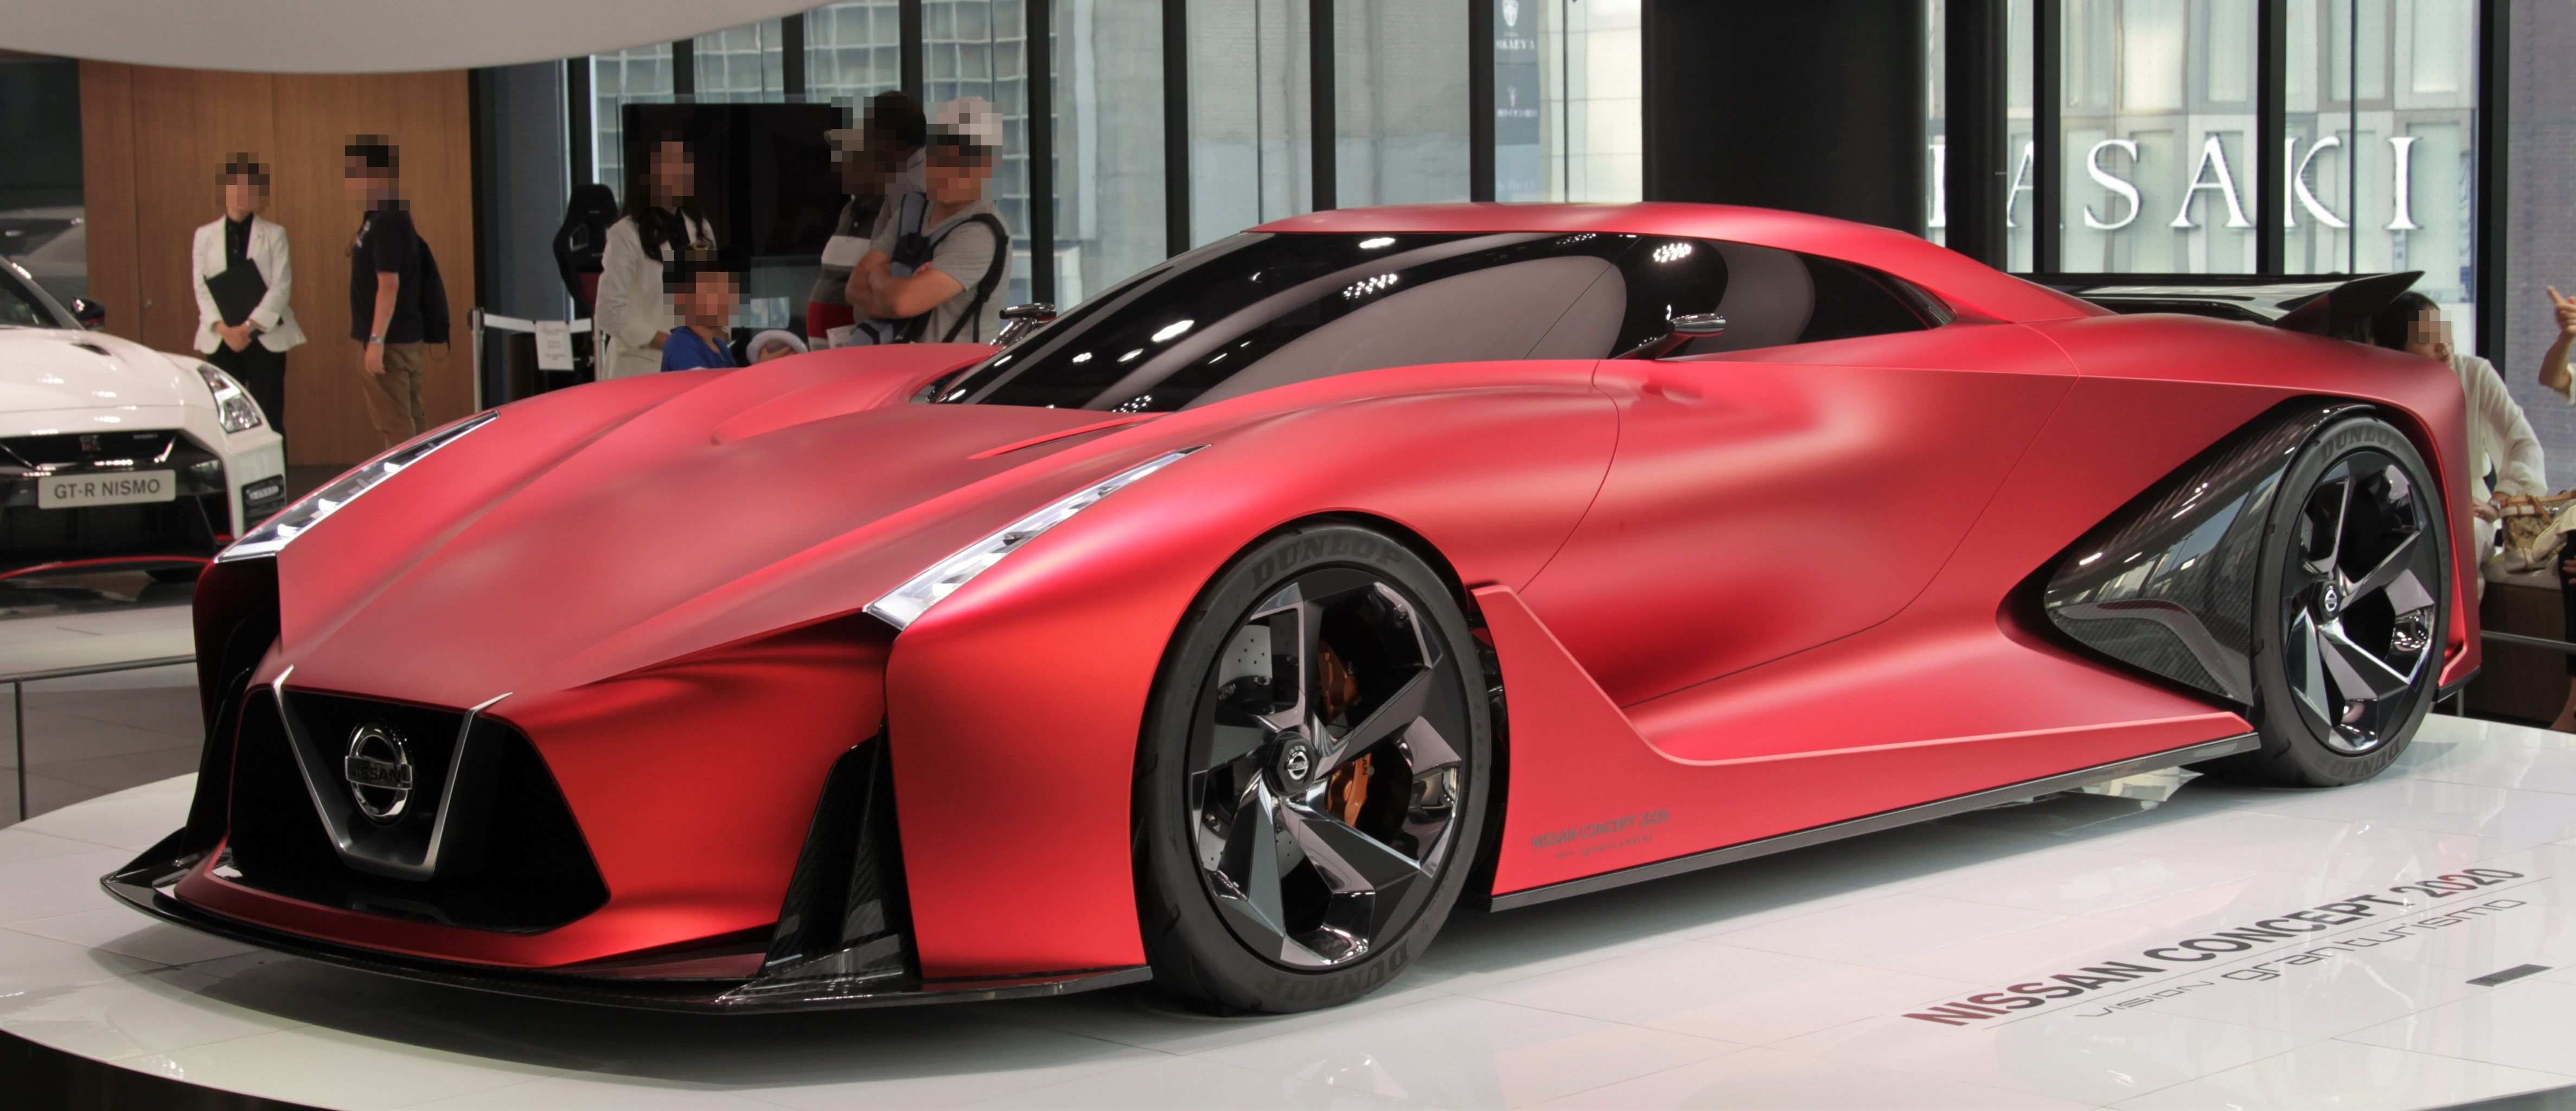 12 Concept of Nissan 2020 Gran Turismo History with Nissan 2020 Gran Turismo